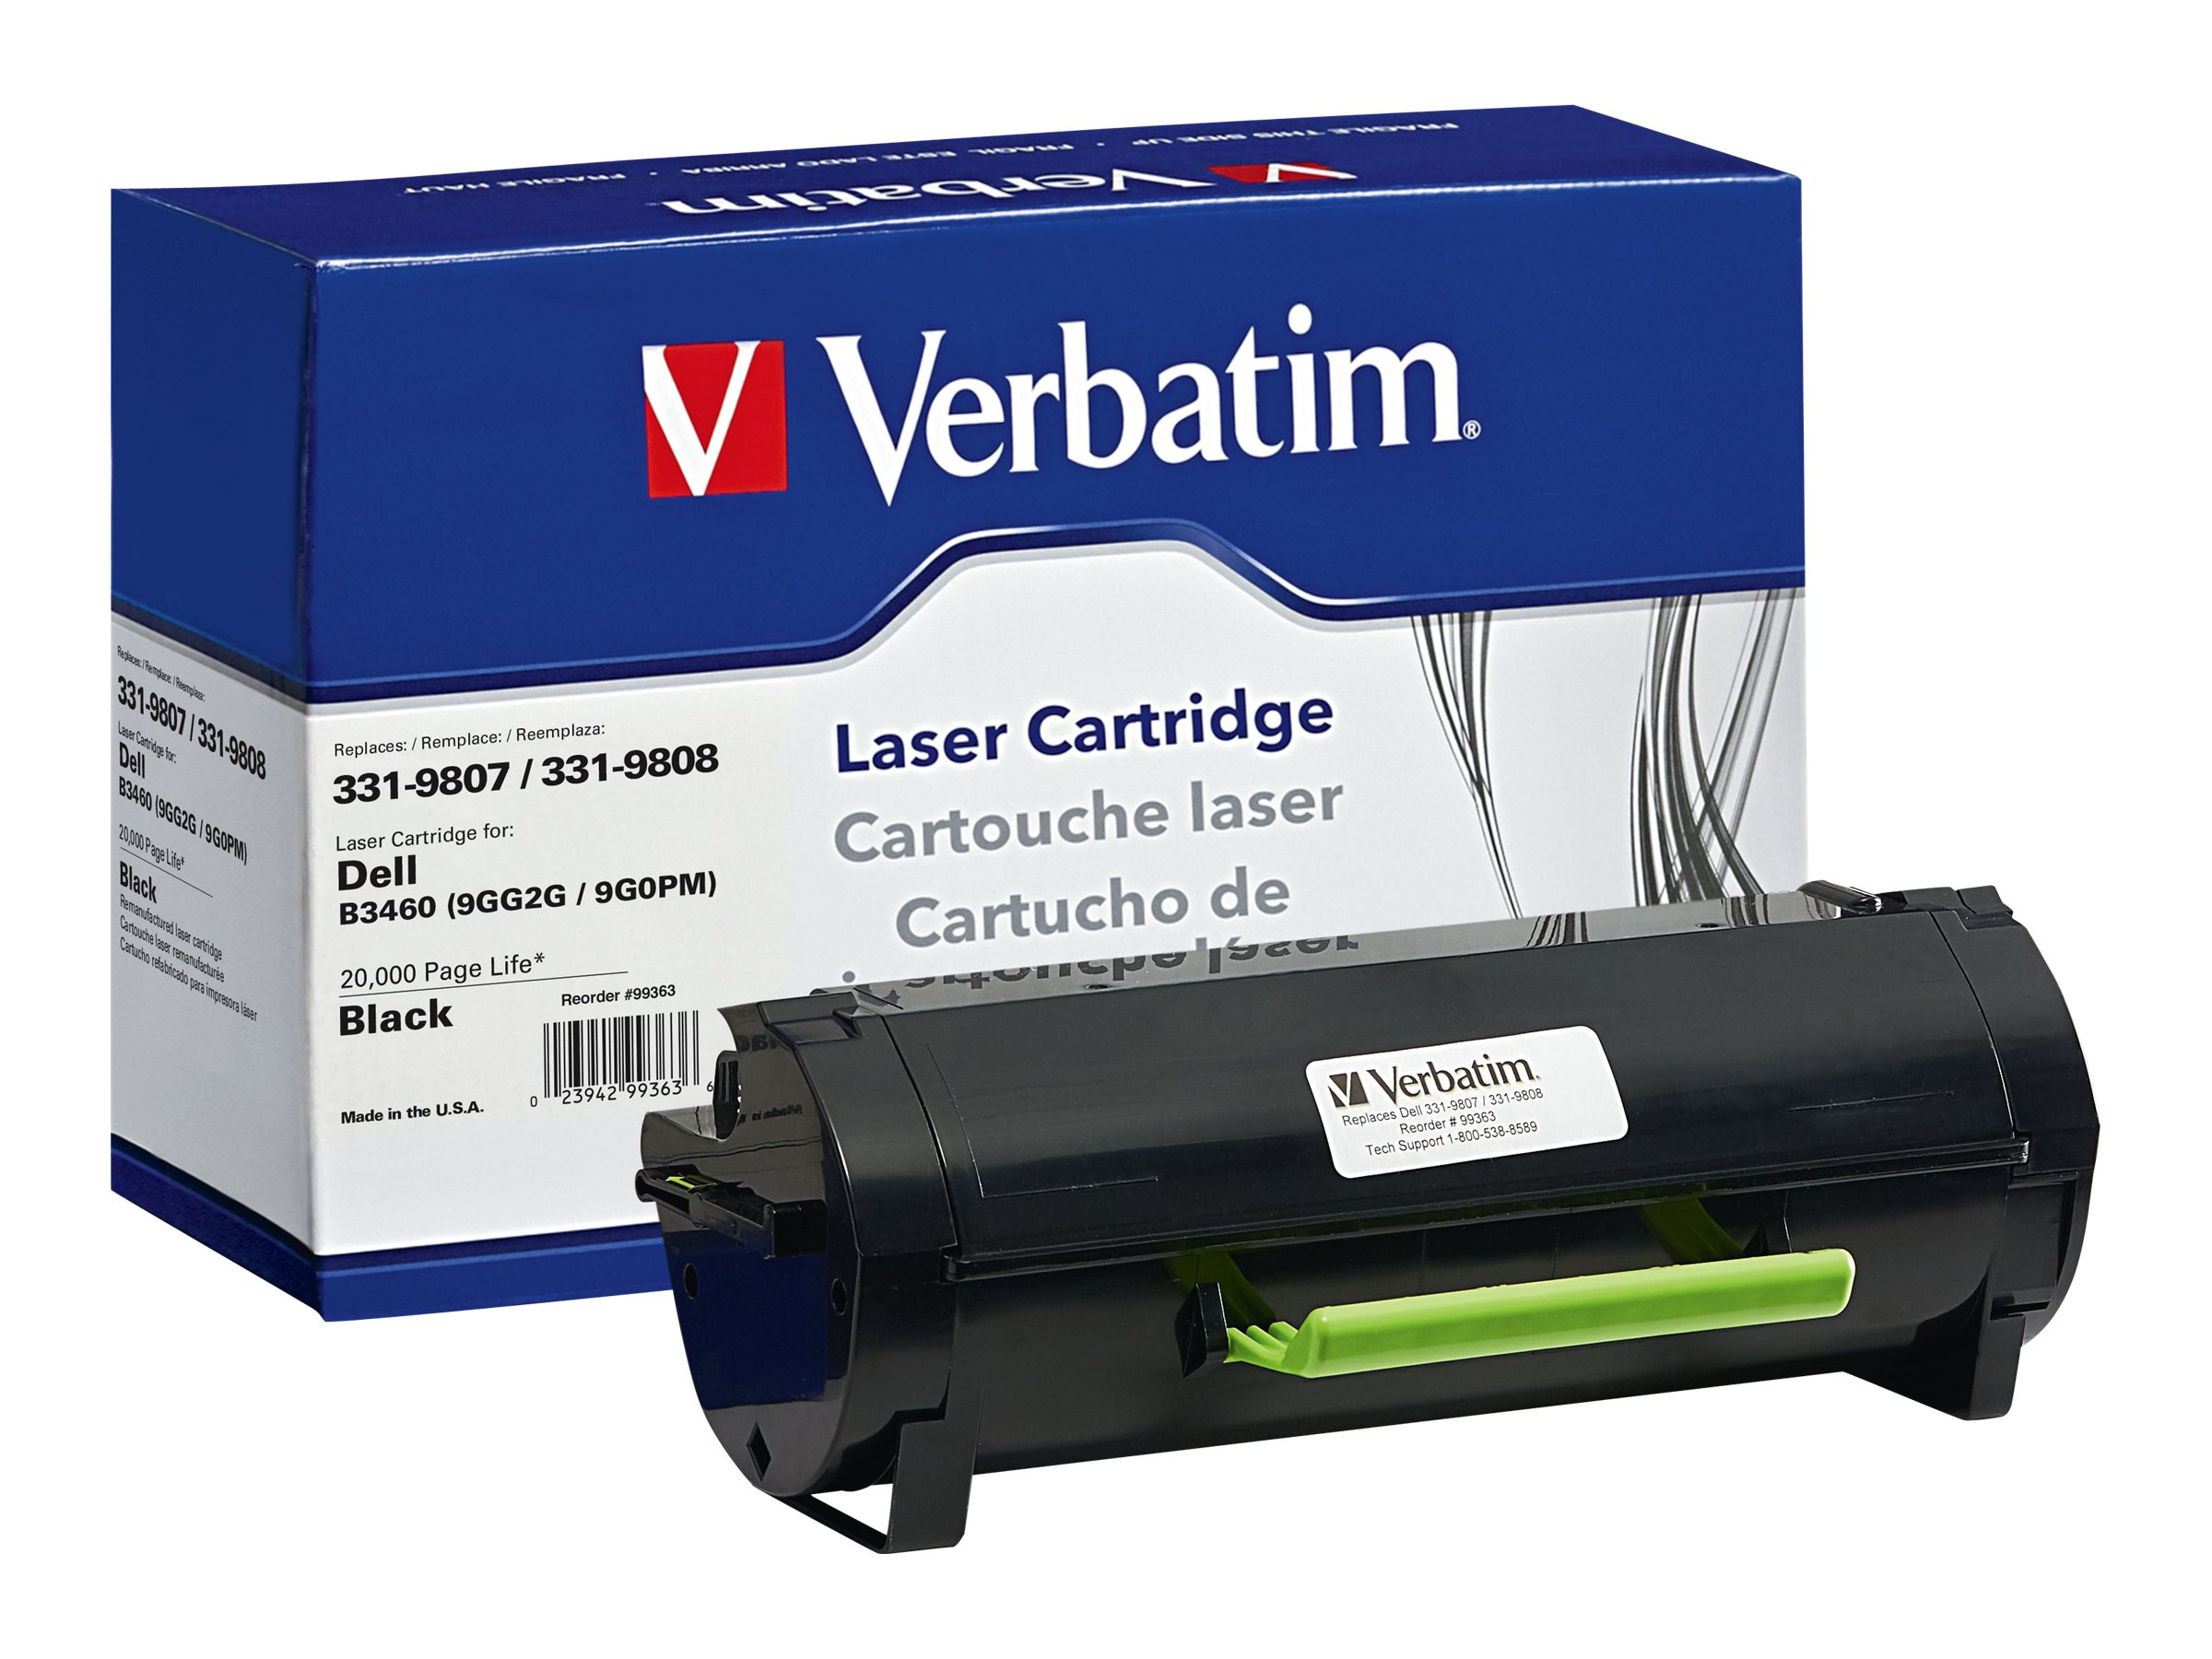 Verbatim 331-9807 331-9808 Toner Cartridge for Dell